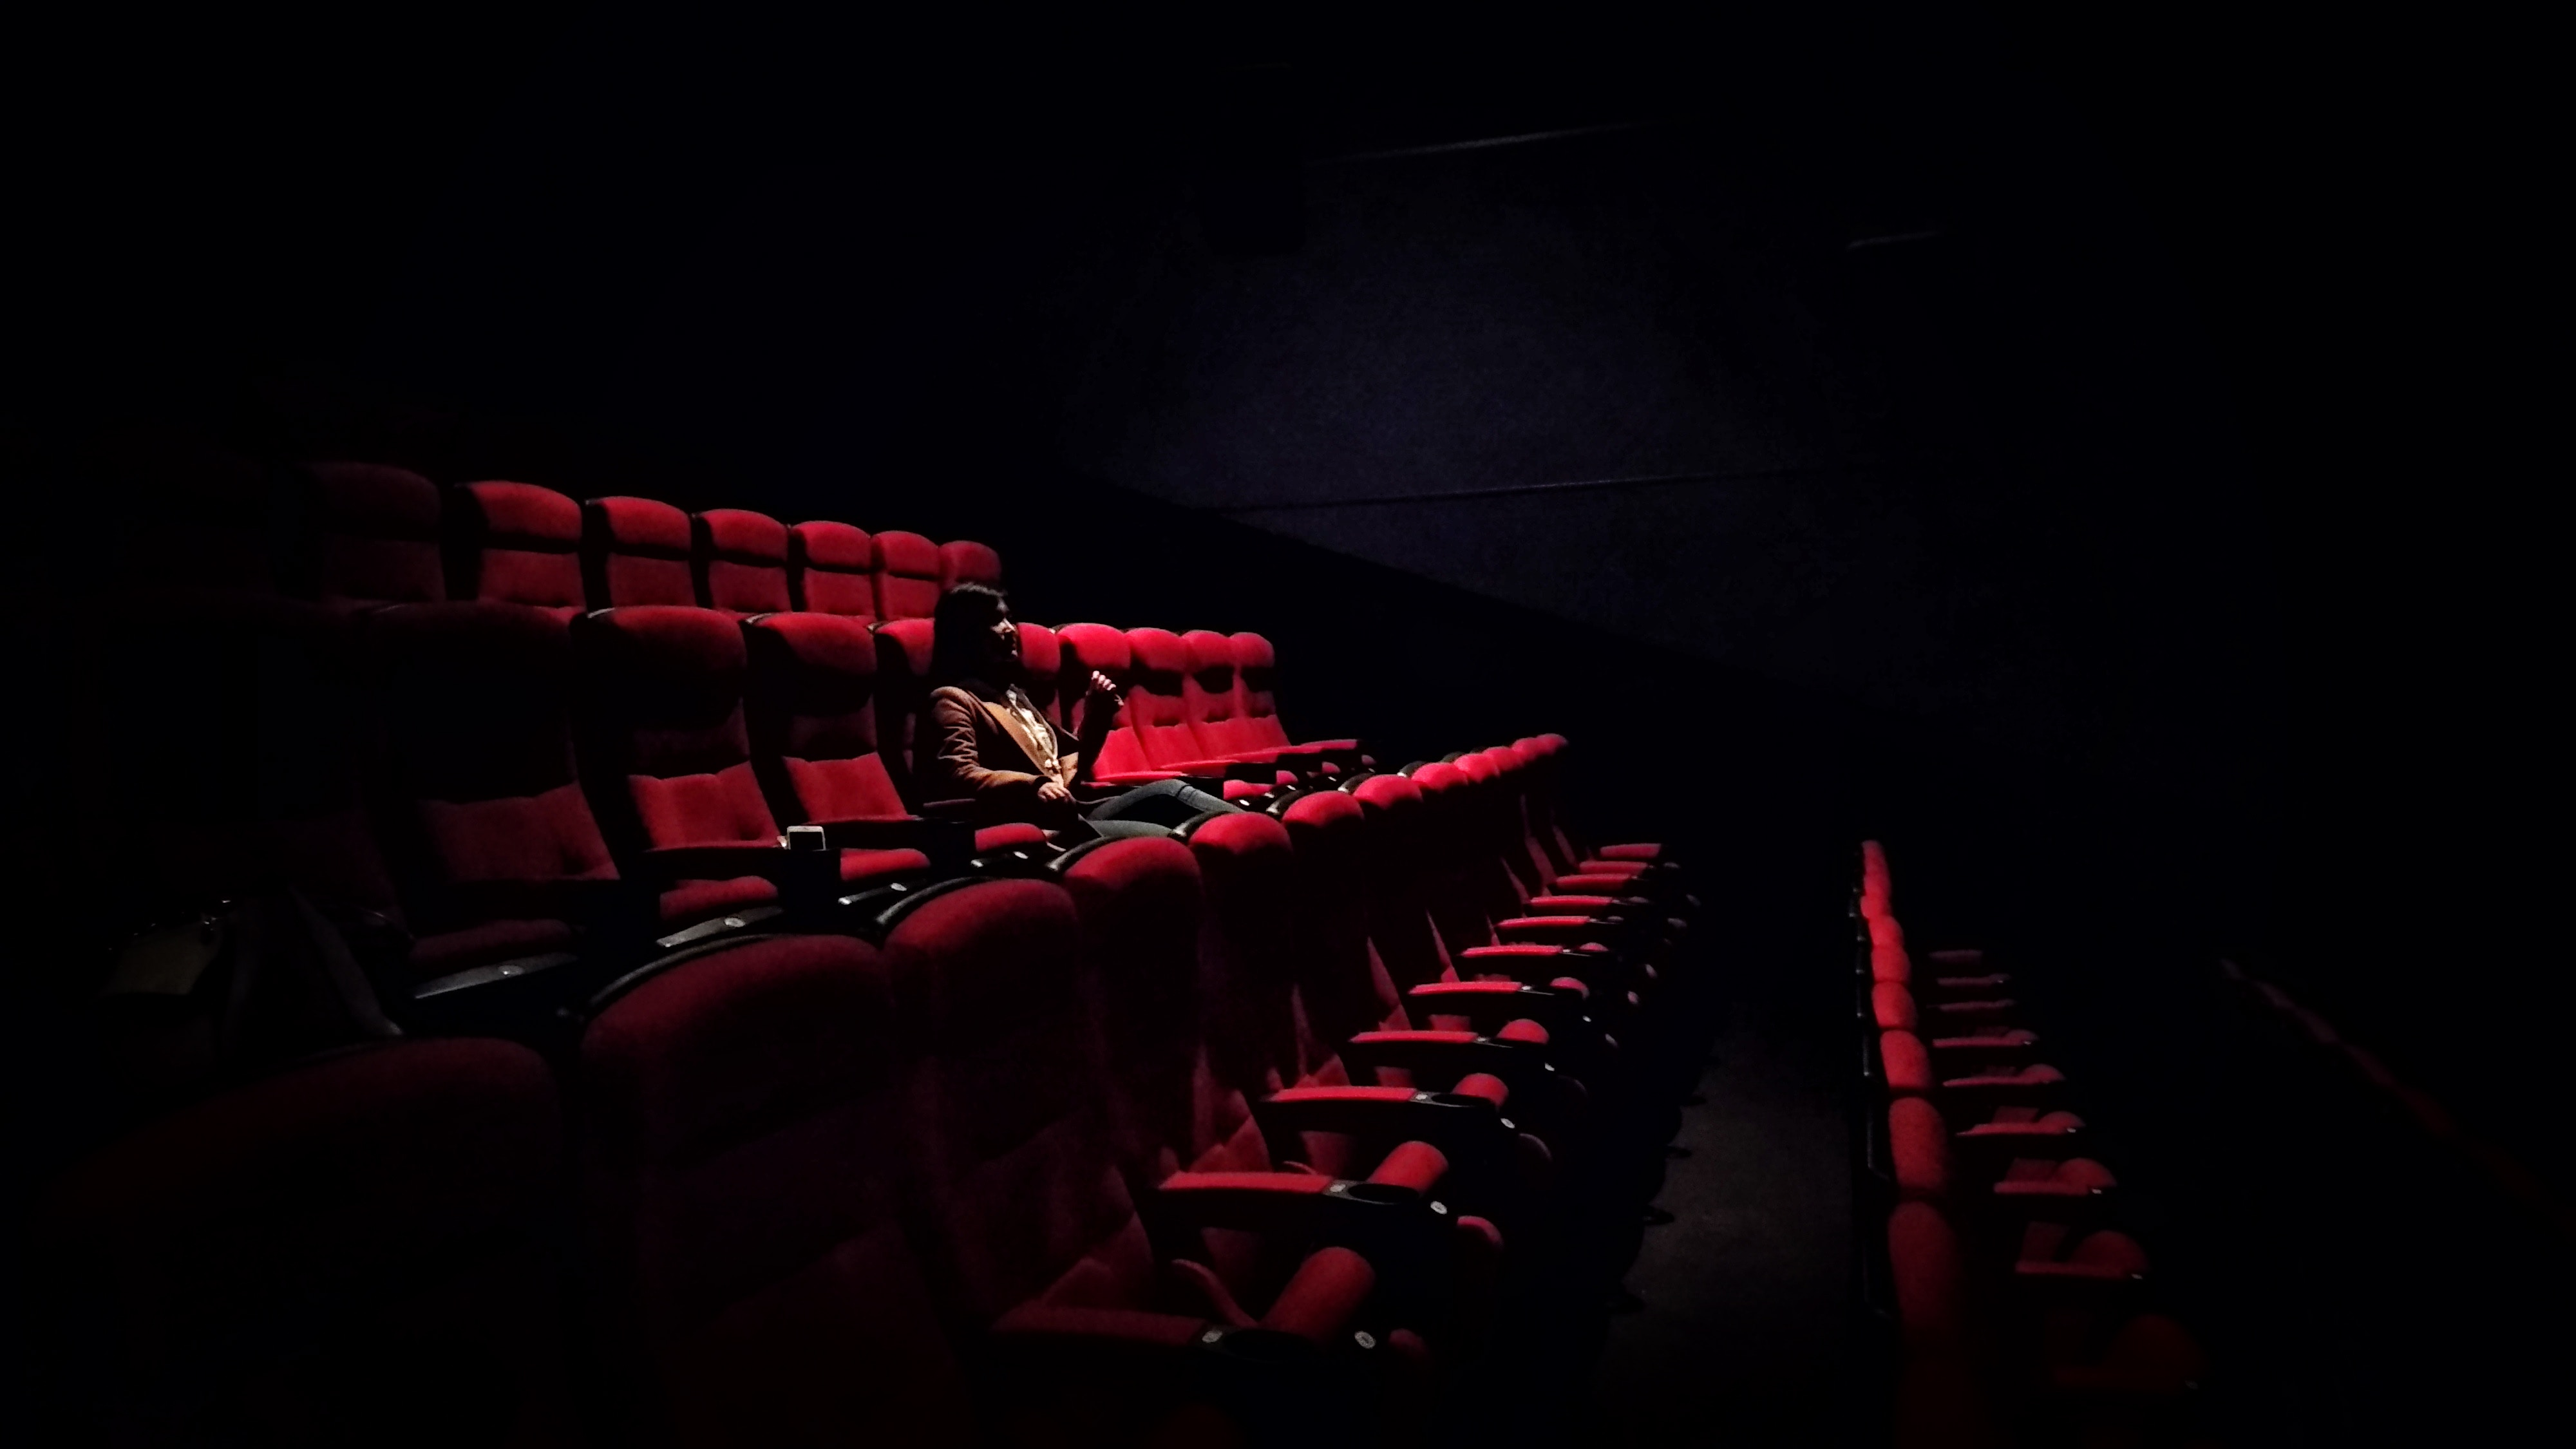 5 Reasons For Why the Cinema Is Worth Visiting